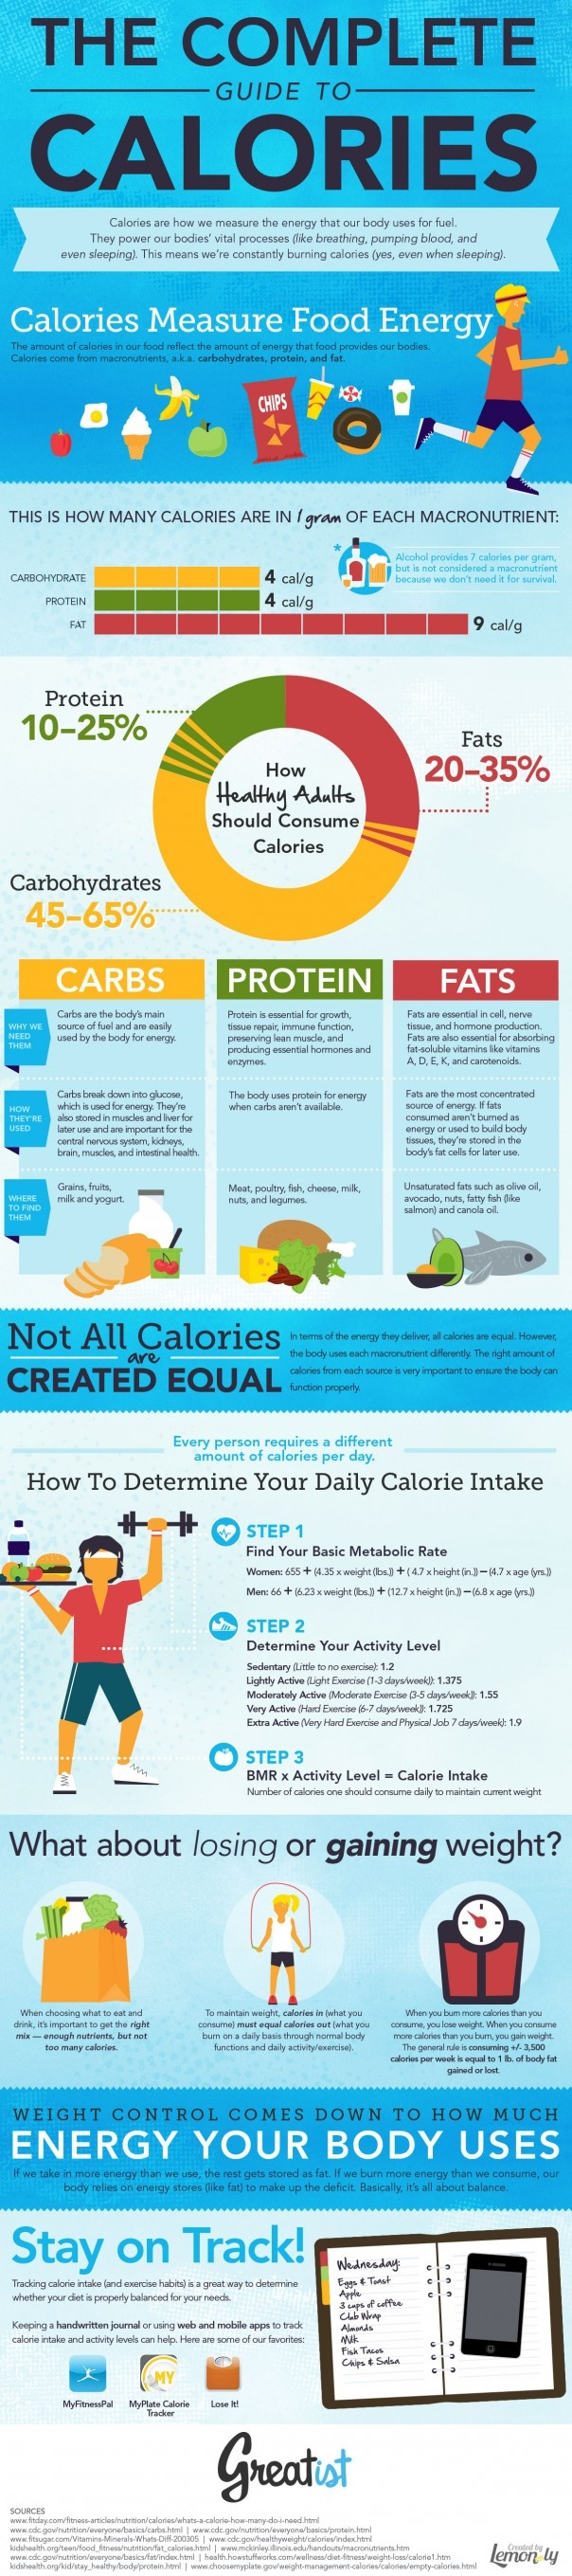 infographic for counting calories